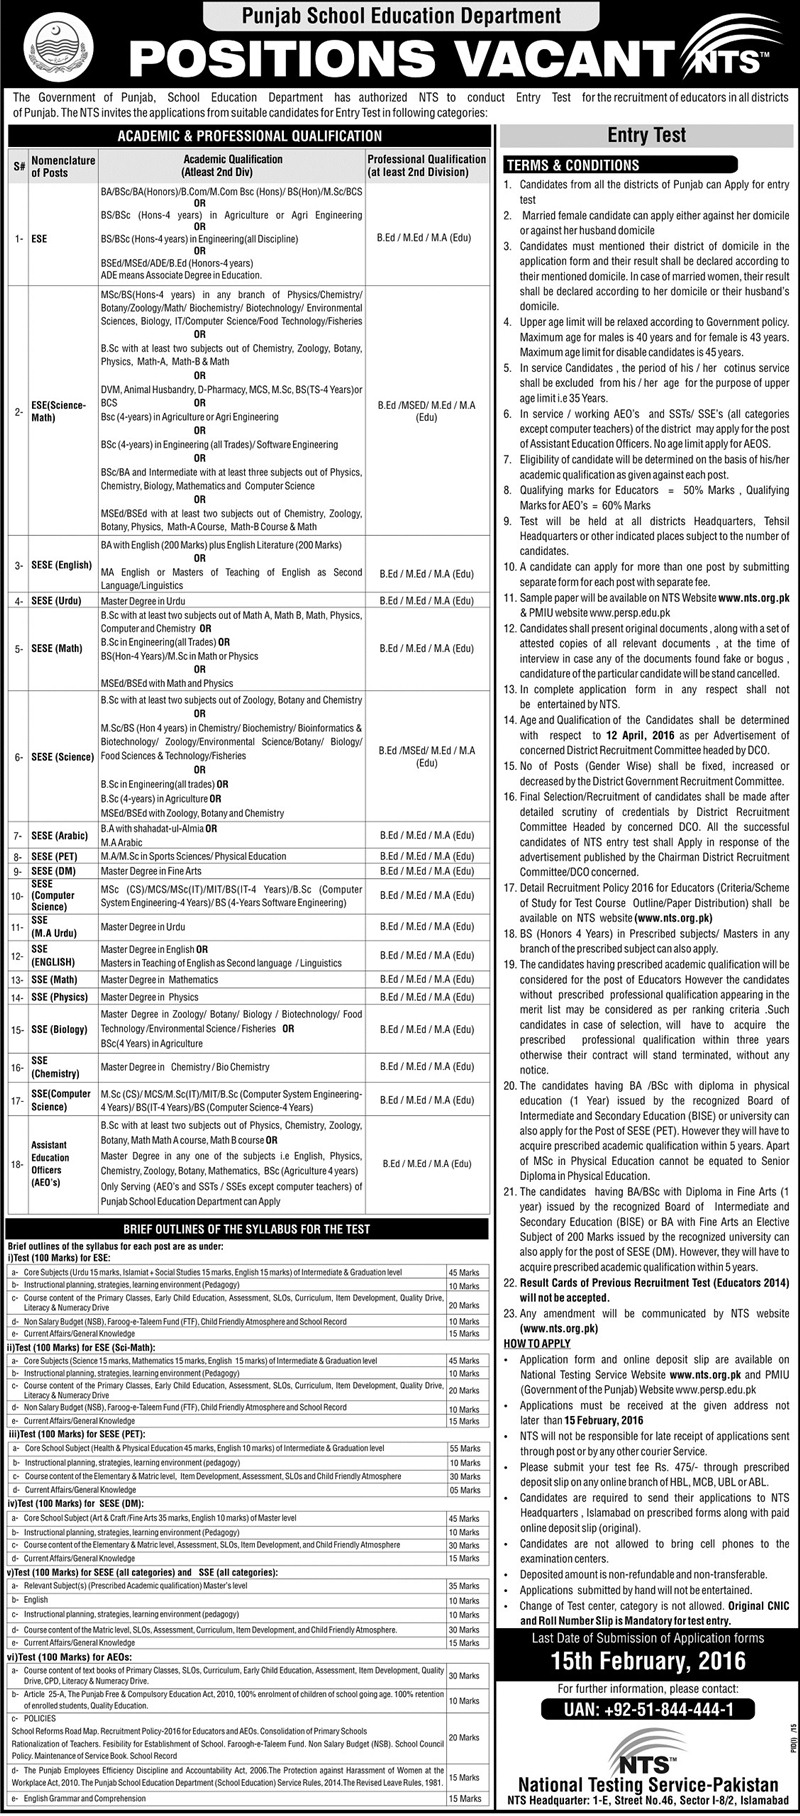 Punjab Educators Jobs 2016 for District Gujrat Interview Dates